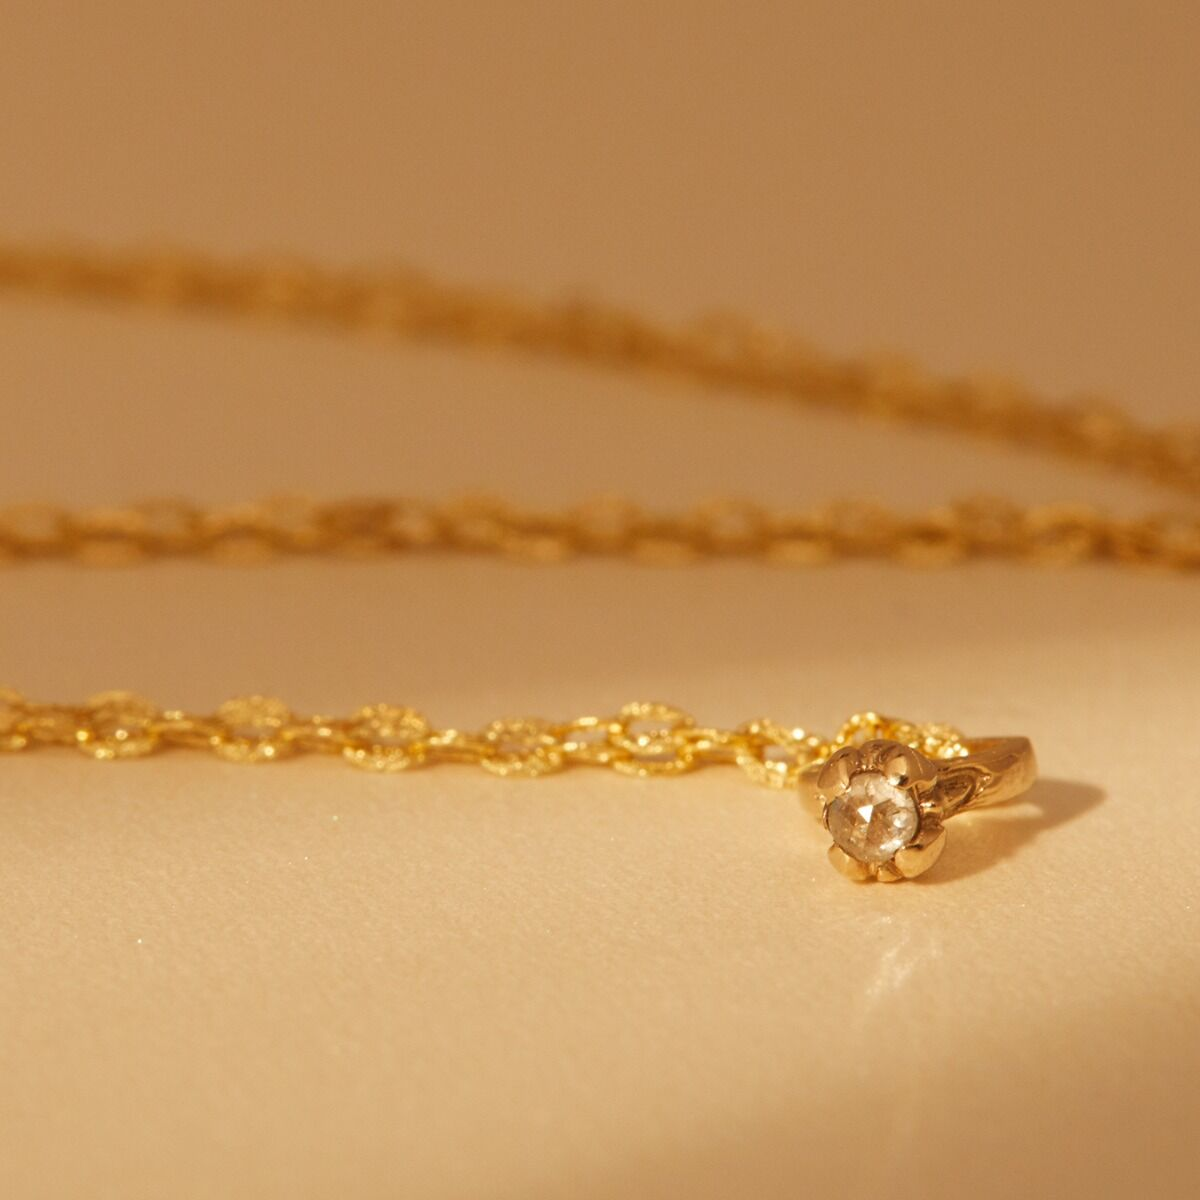 Bitty Diamond Ring Necklace image